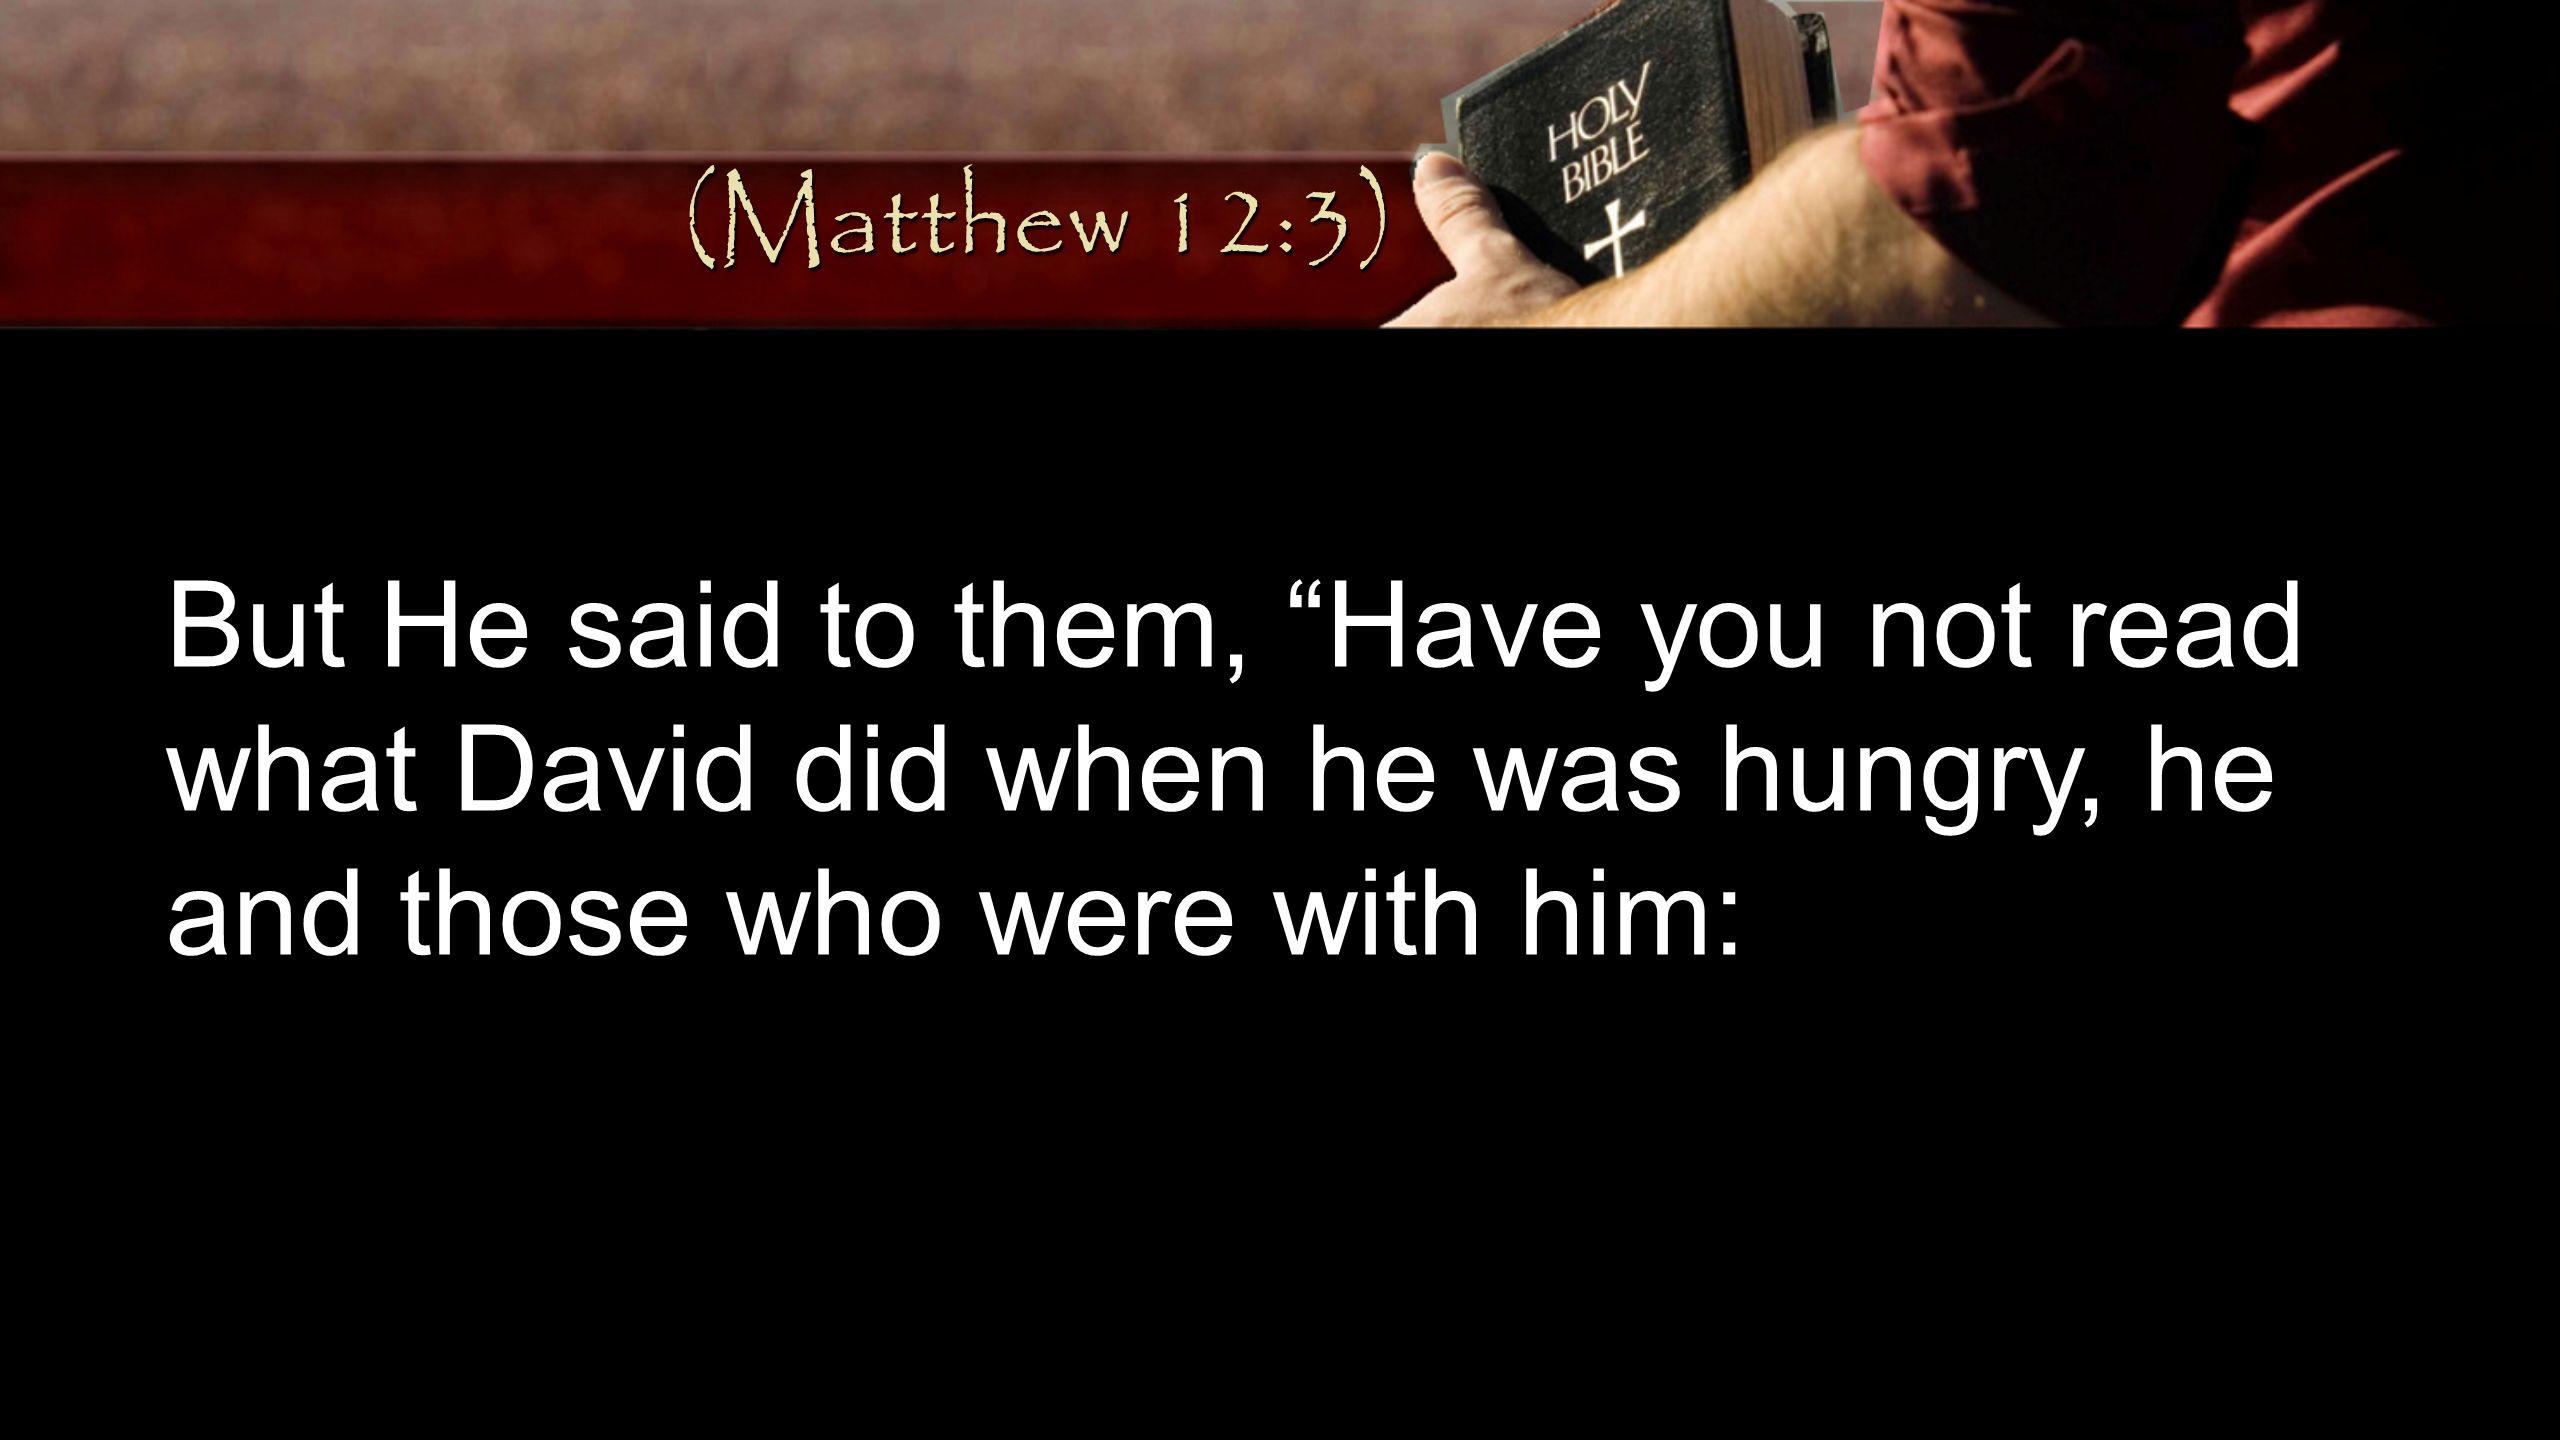 (Matthew 12:3) But He said to them, Have you not read what David did when he was hungry, he and those who were with him: